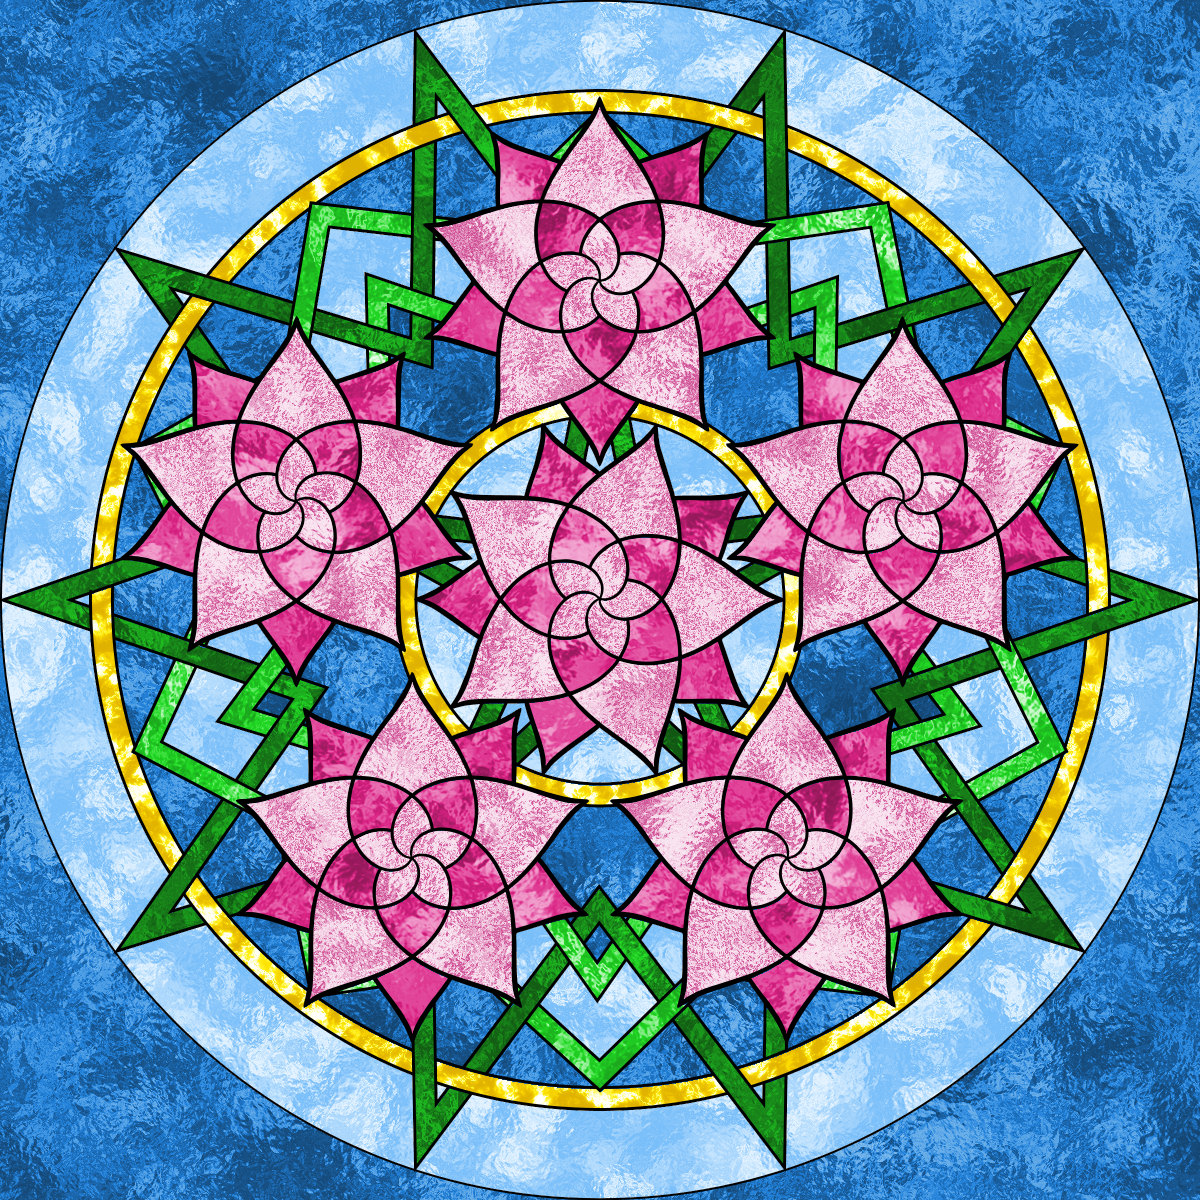 mandala coloring pages free printable - 29 Free Printable Mandala Colouring Pages Canada Arts